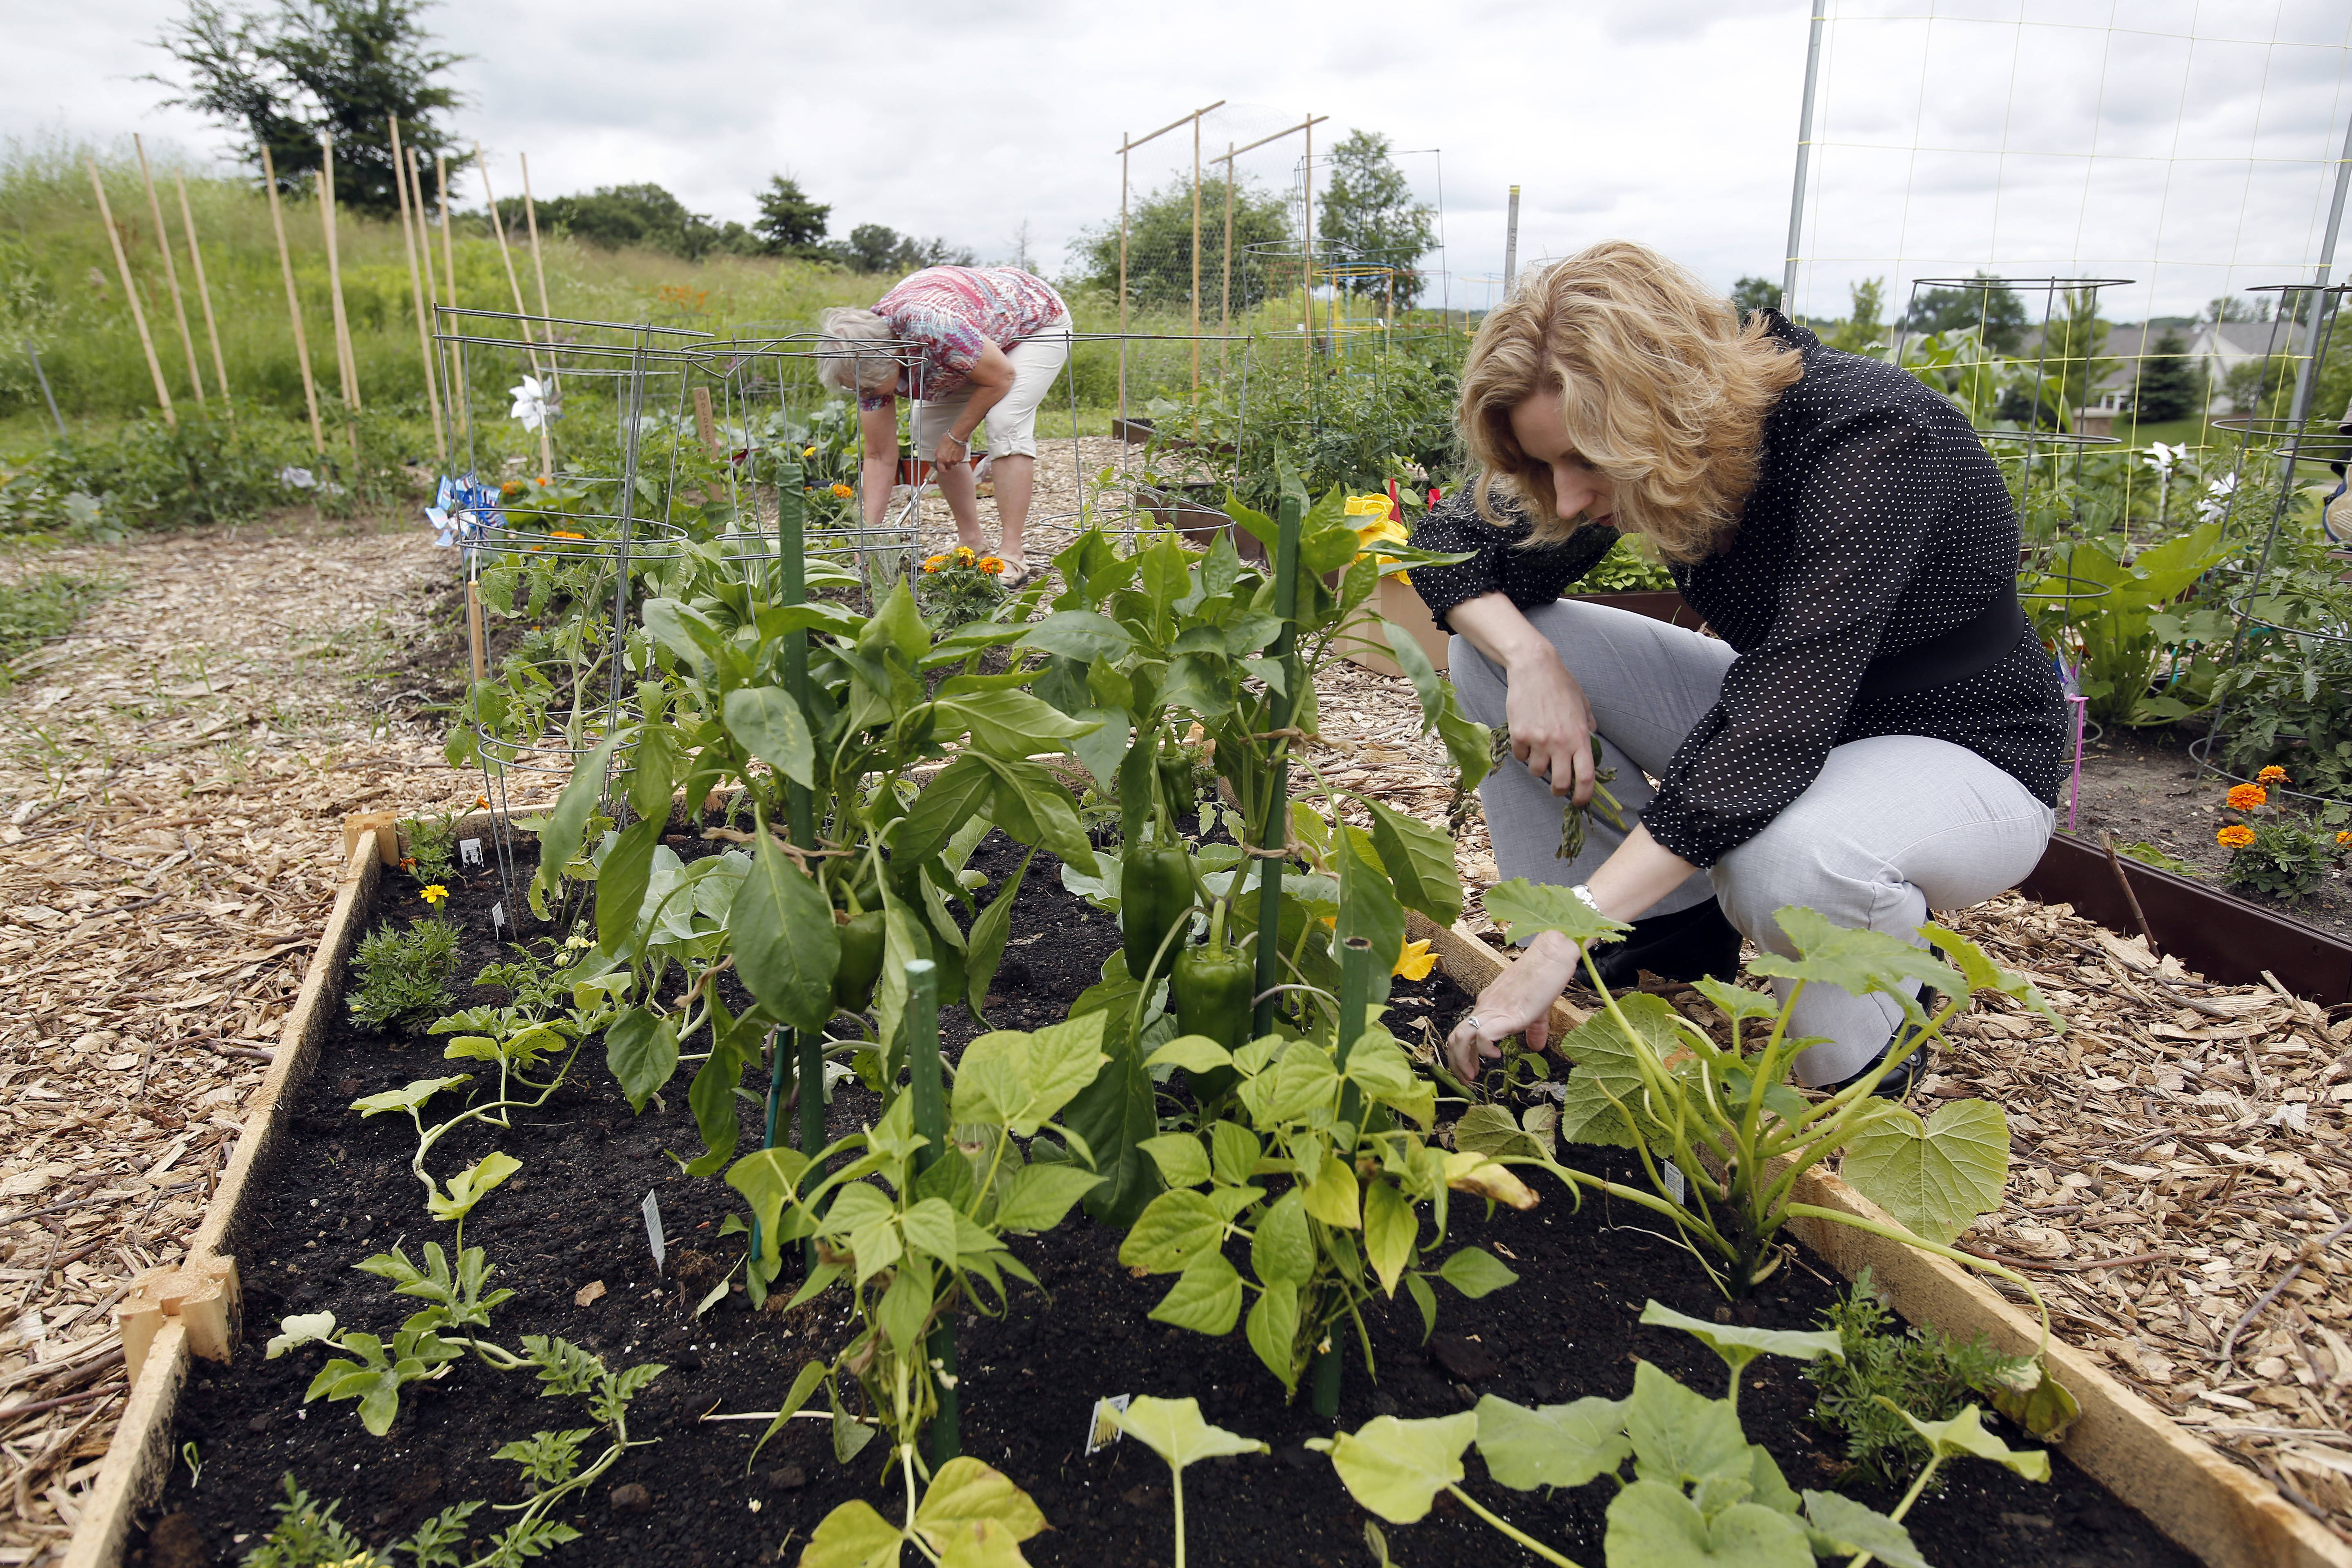 Monica Dombrowski of Elgin planted squash, yellow wax beans, bell peppers, tomatoes, broccoli and cauliflower in her garden plot next to fire station No. 7. Some of the proceeds go to Food for Greater Elgin.